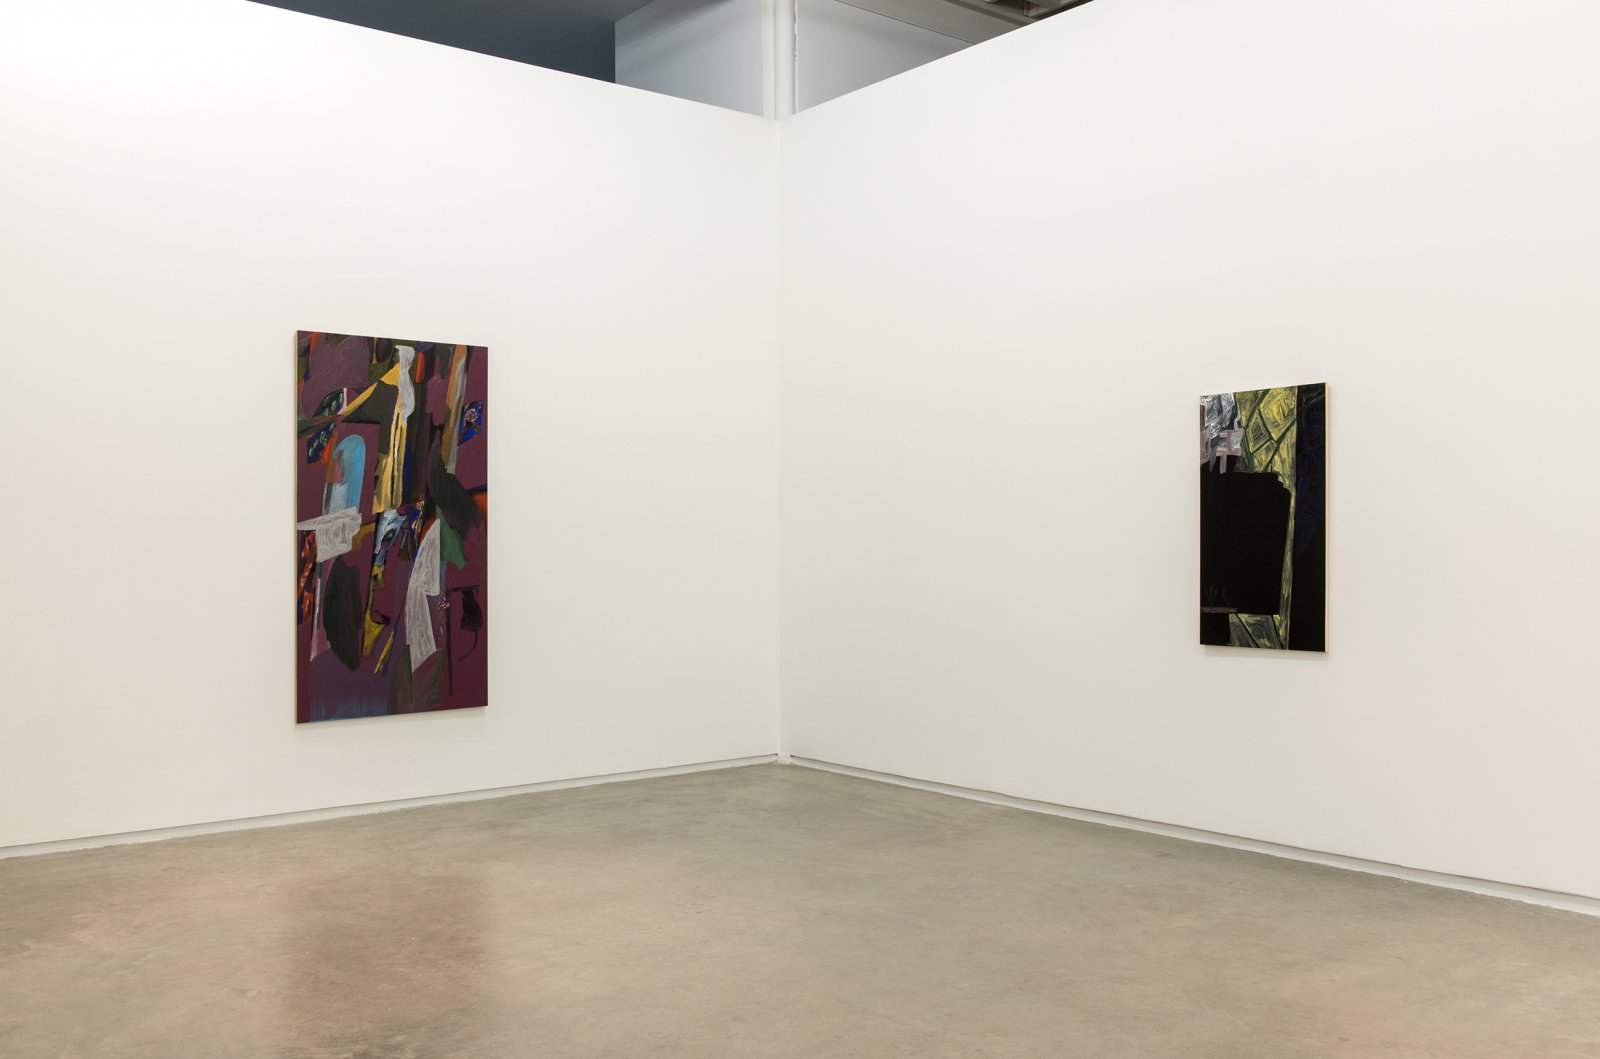 Rebecca Brewer, installation view, The Written Face, Catriona Jeffries, 2014 by Rebecca Brewer